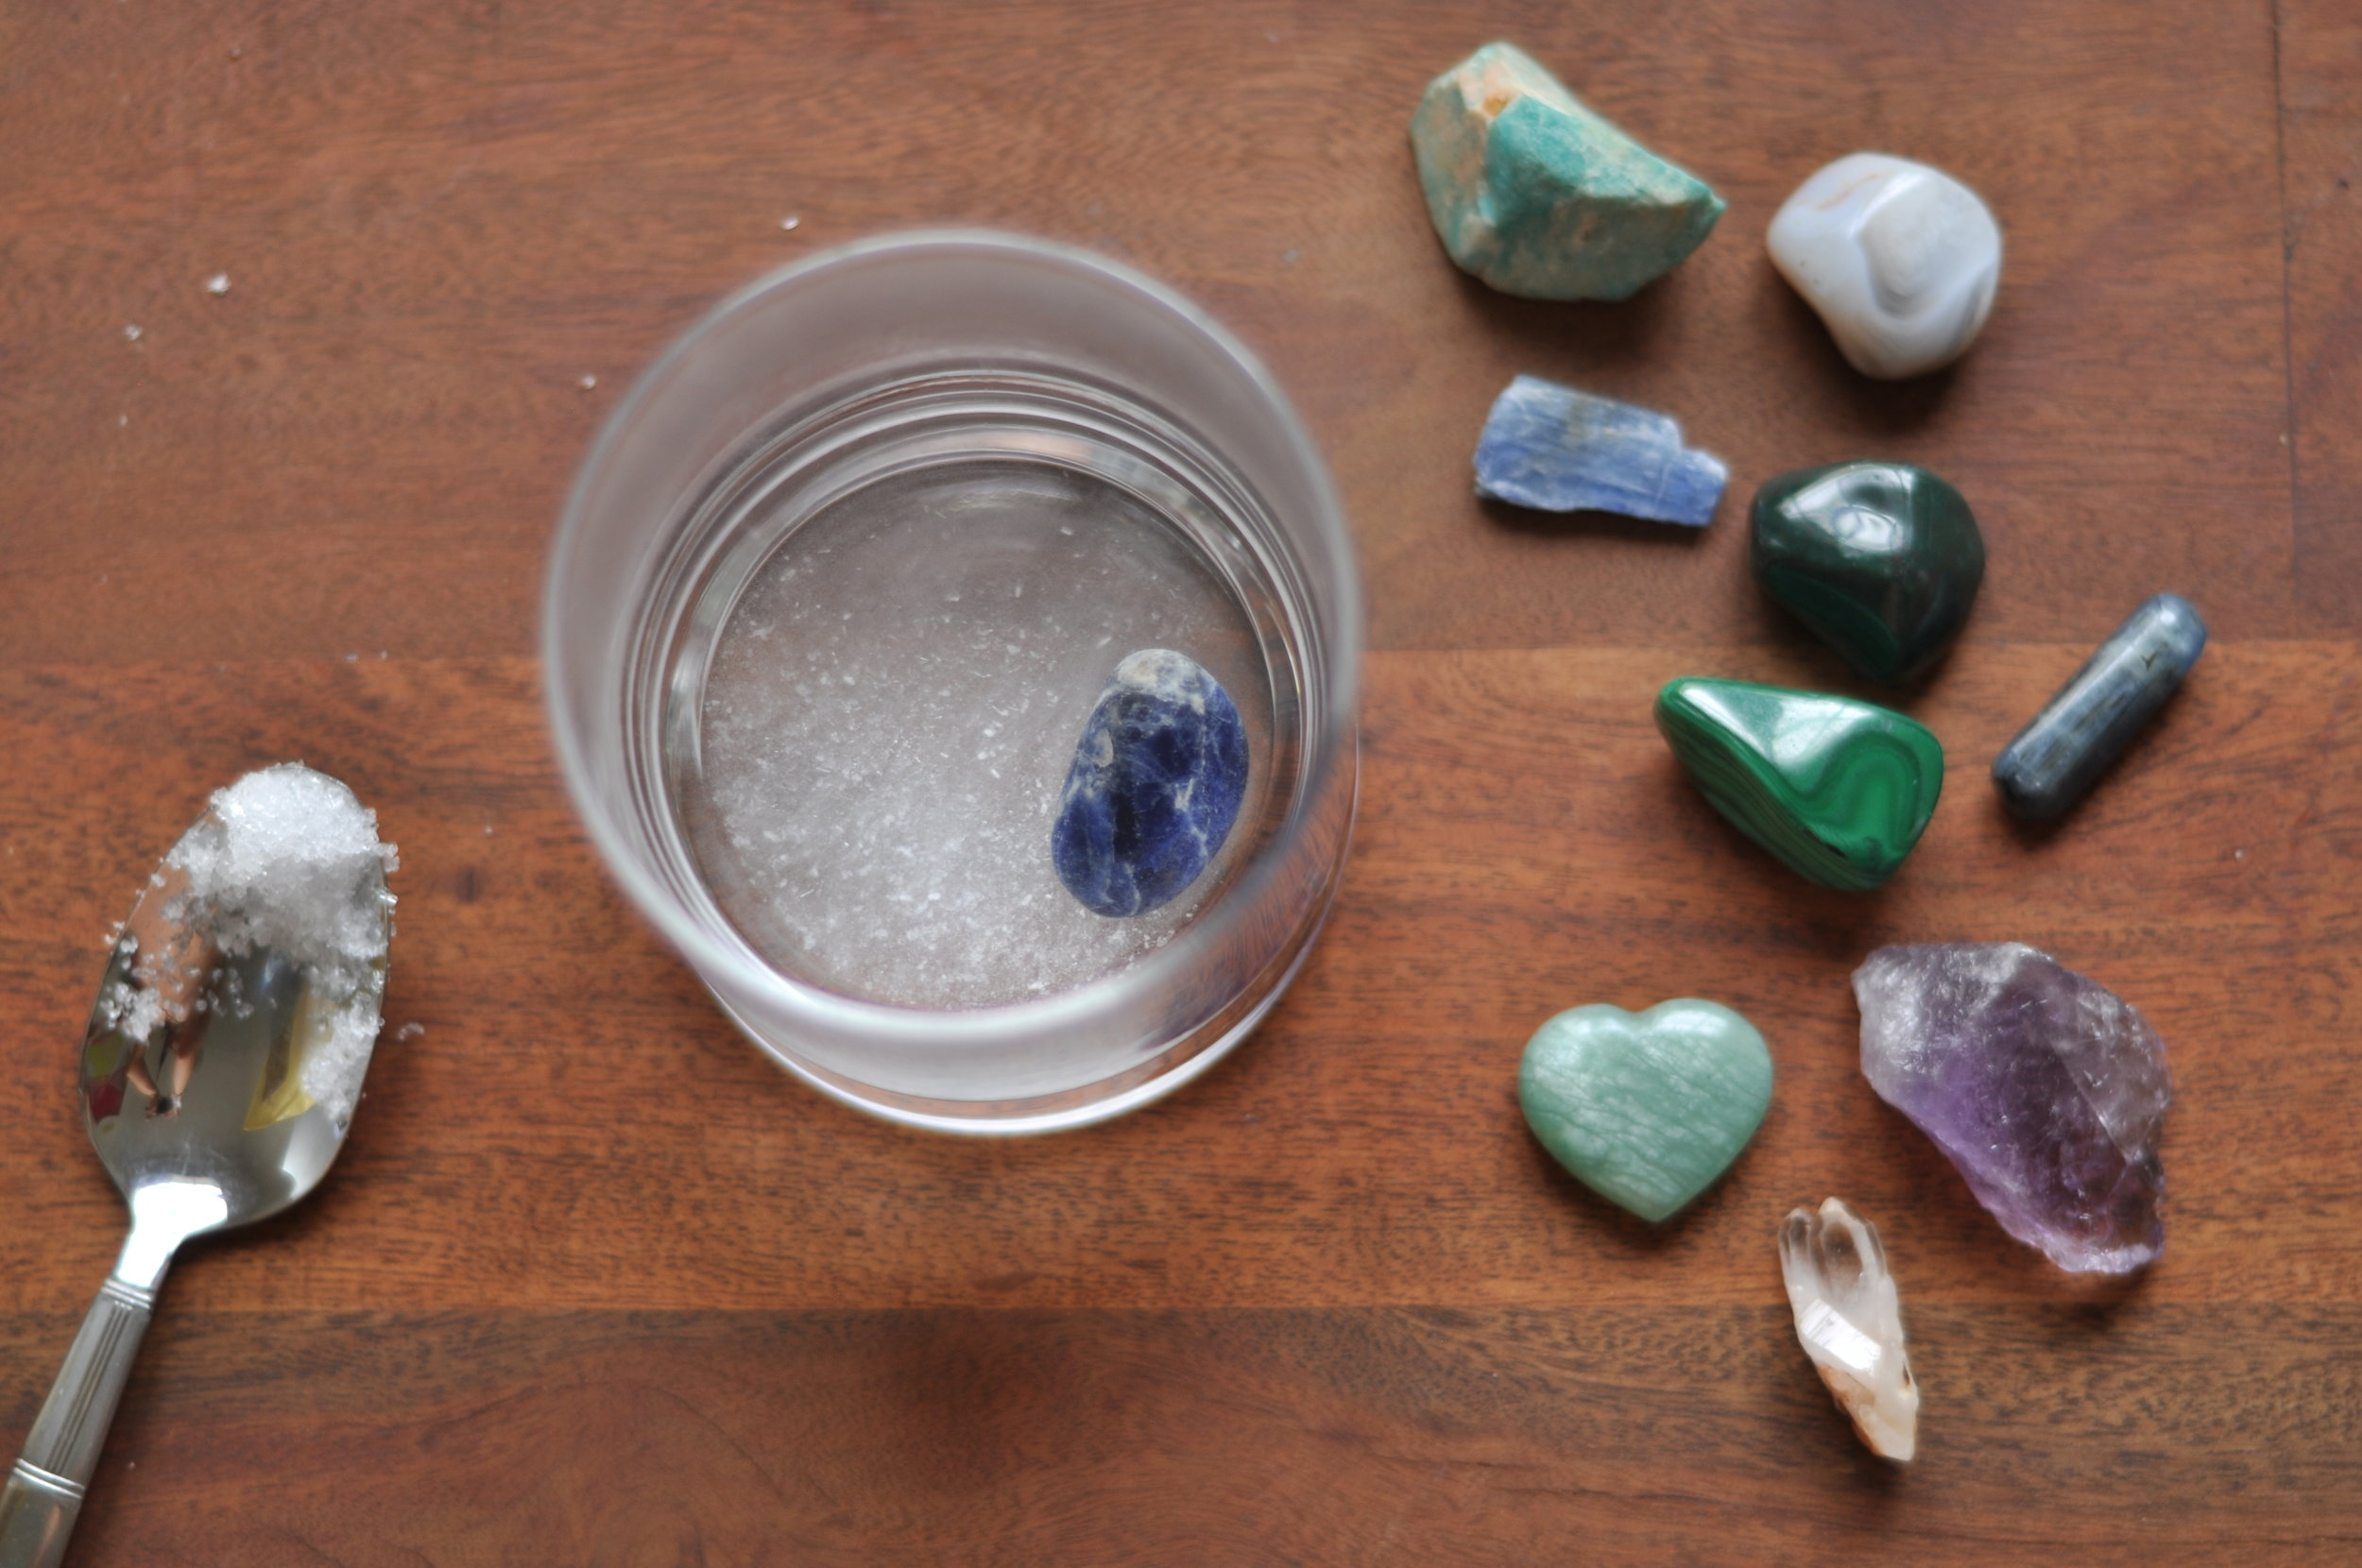 Give 'em a salt water bath  - Drop your crystals in water with himalayan or dead sea salt for up to 24 hours to cleanse their energy.